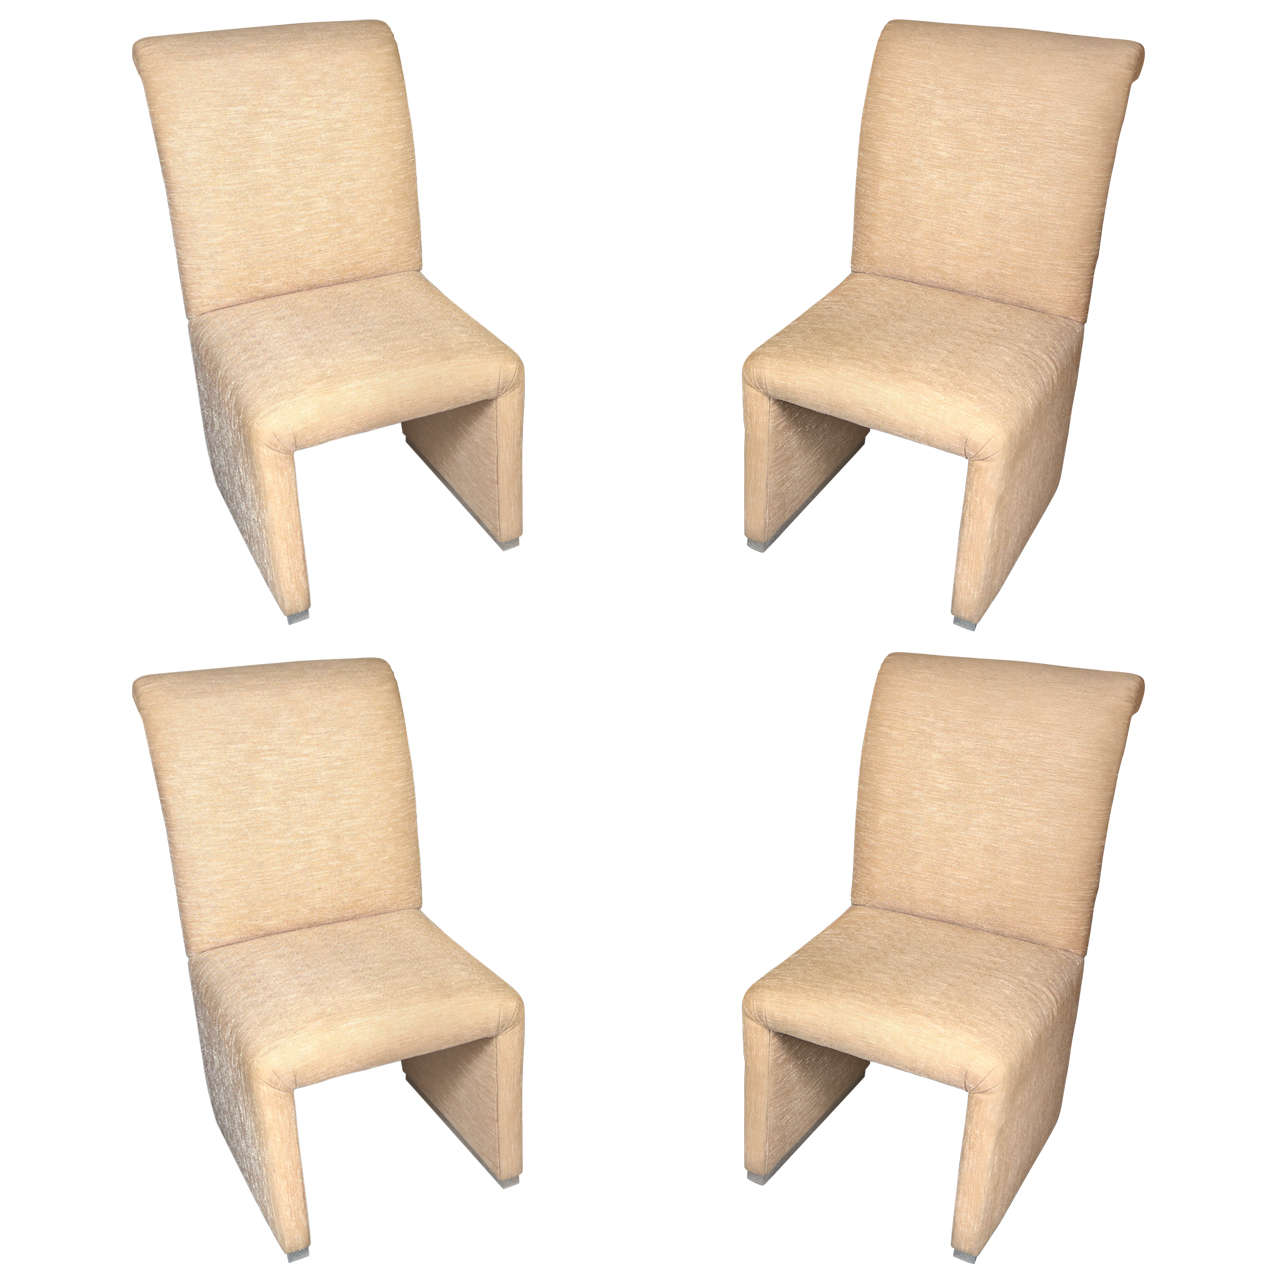 Set of Four Chairs by Steve Chase at 1stdibs